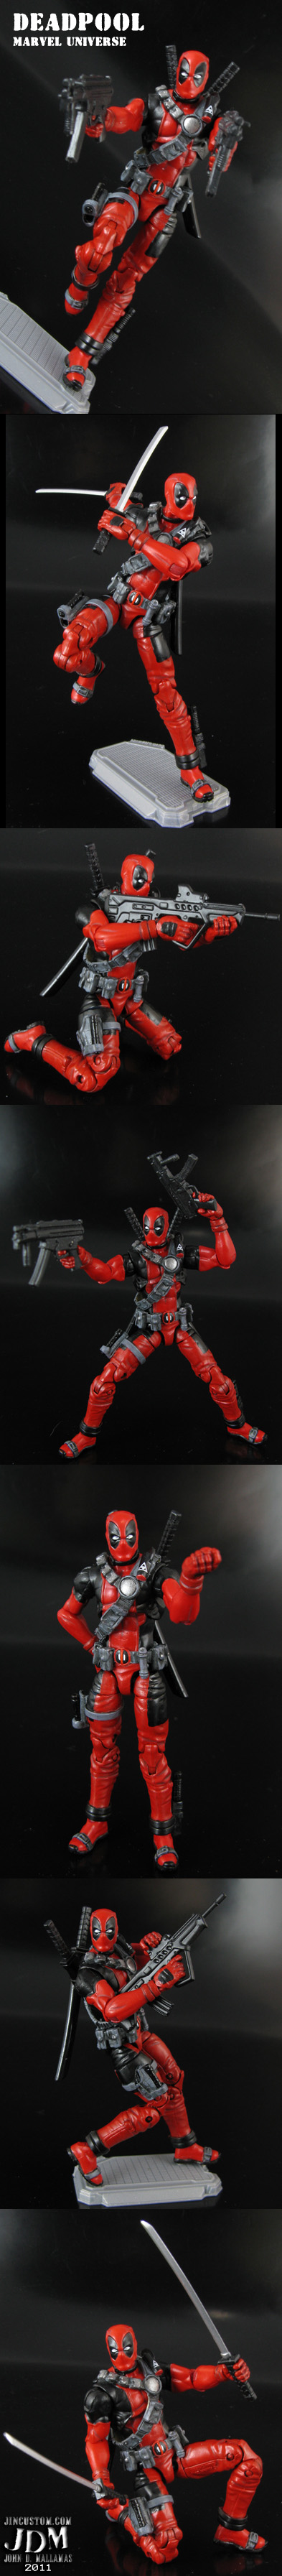 Marvel Universe Deadpool